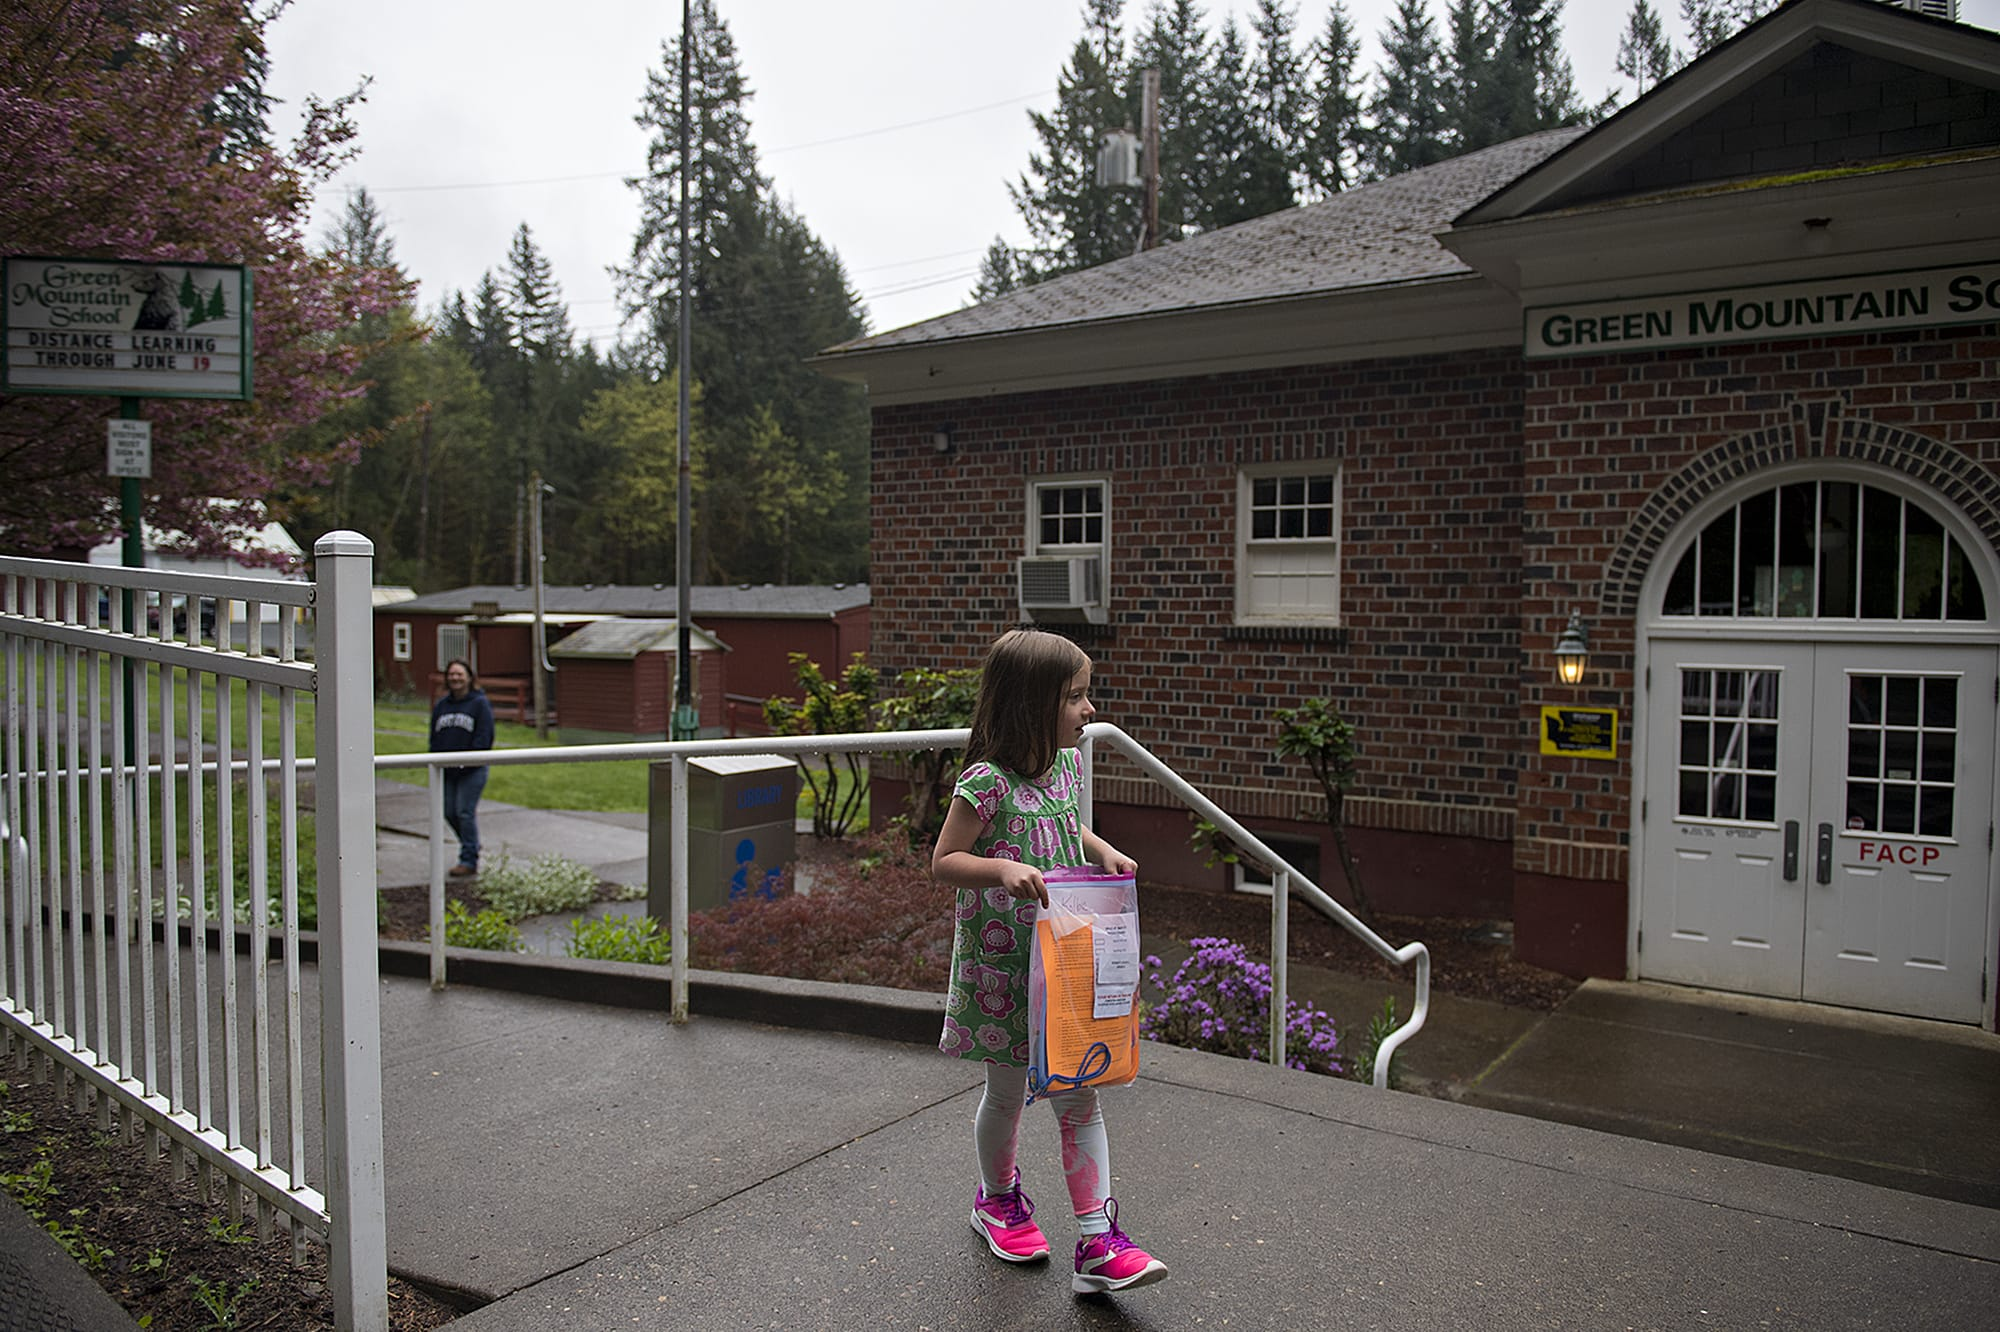 Green Mountain School first-grader Kolbie Bennett, 7, takes the school packet with her assignments to go while visiting the closed campus with her mom, Aeranee, in Woodland on Friday morning, April 24, 2020. (Amanda Cowan/The Columbian)